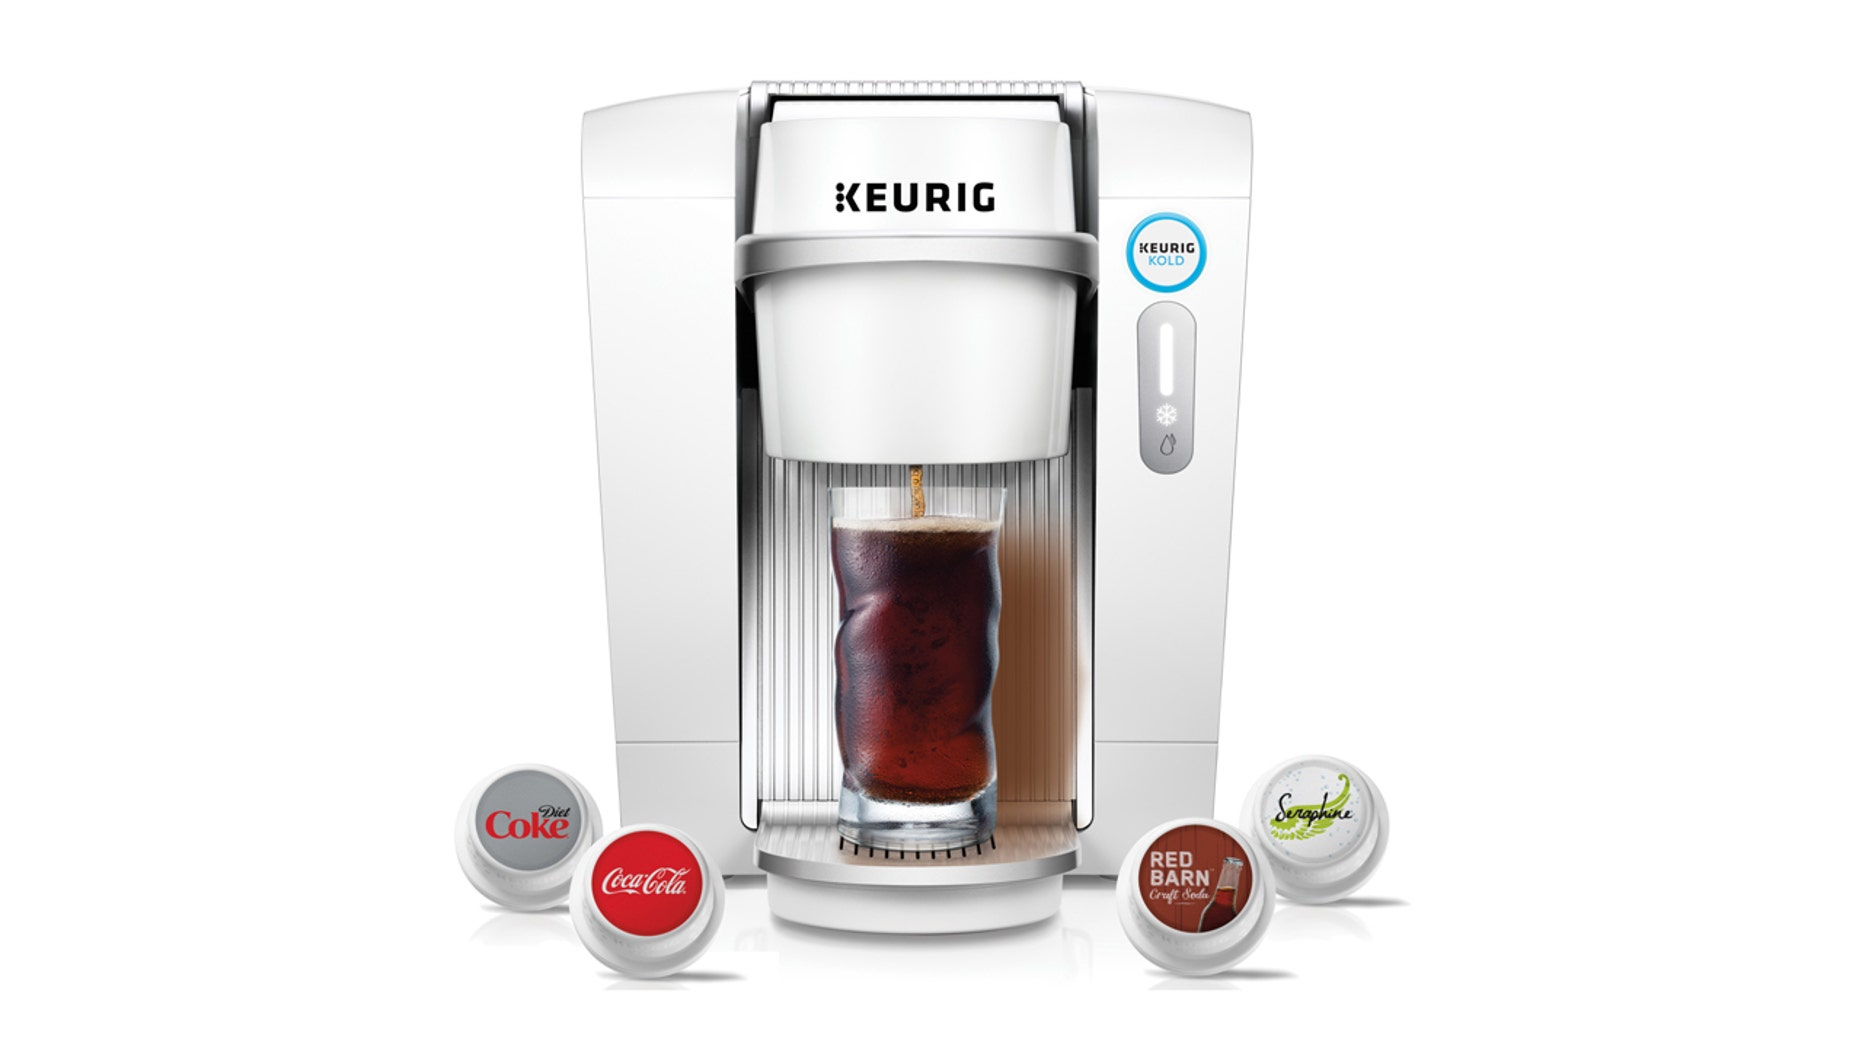 The Keurig Kold machine with single serving pods is on sale today.